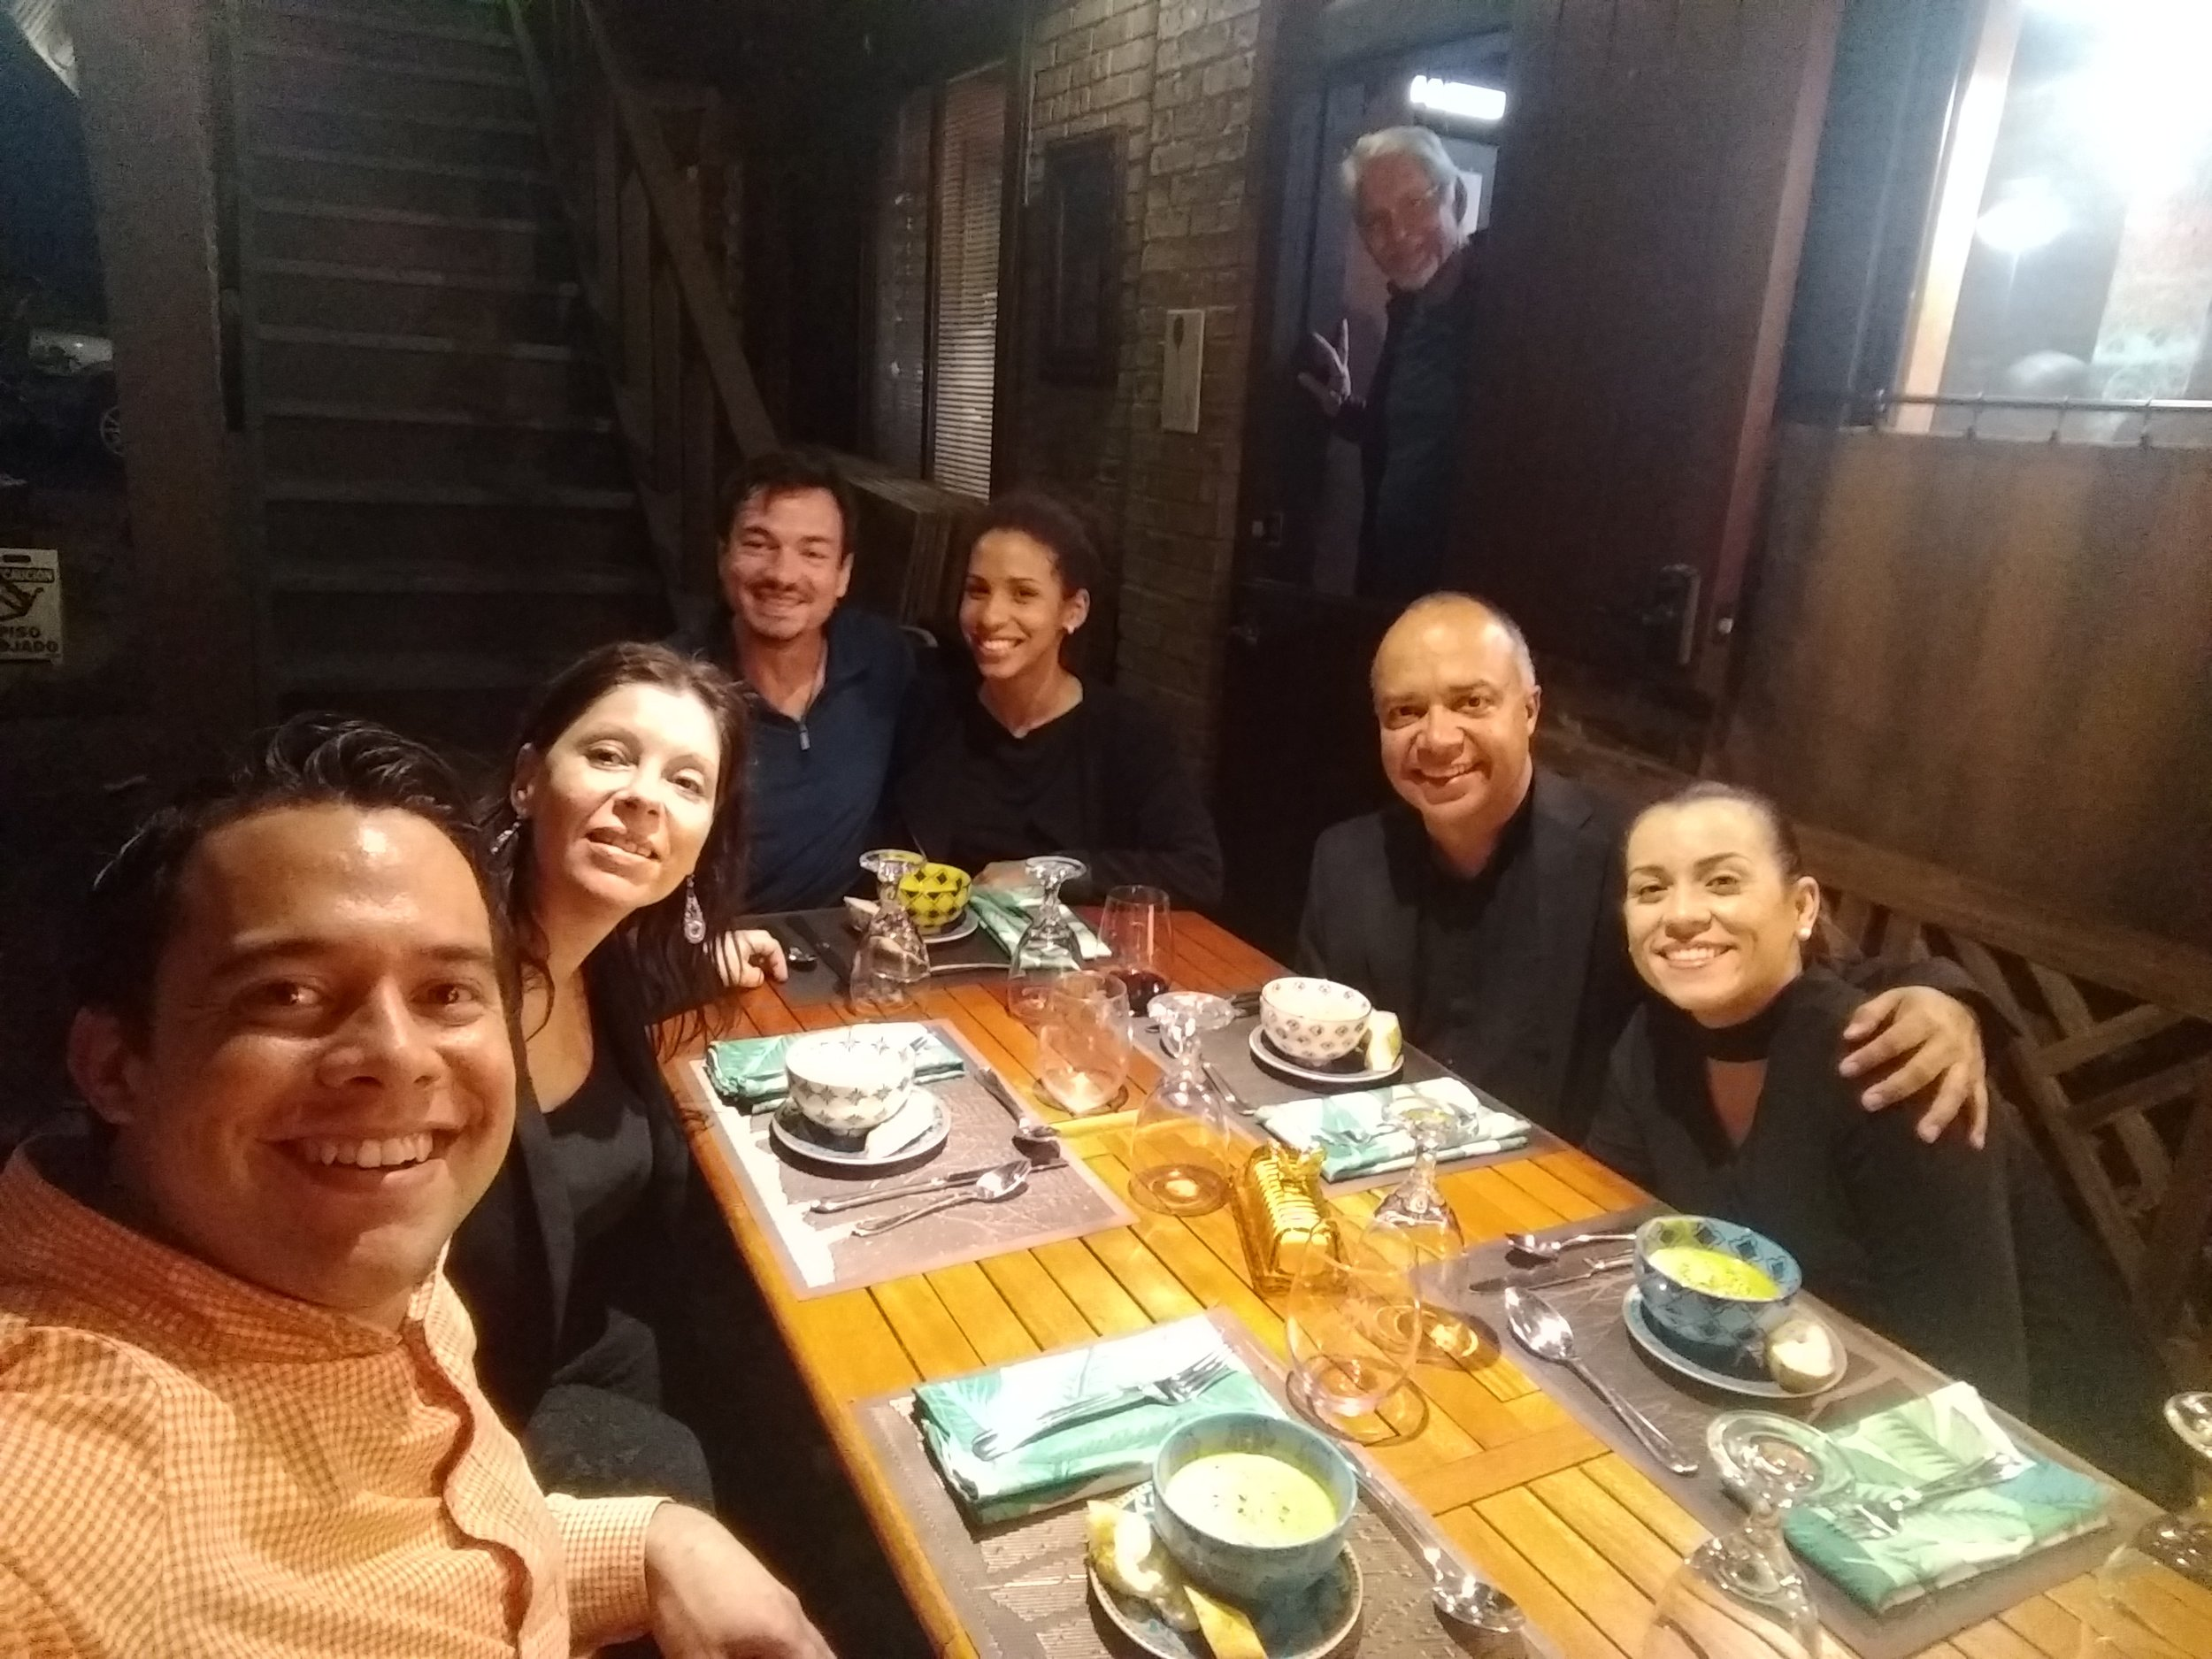 A photo of all performers! (Left to right: Reisaac Colón, Veronica Pellegrini, Robert Egan, Lilliana Marrero Solís, Luis Miguel Rojas, Rosa Sierra…and Bill in the background)